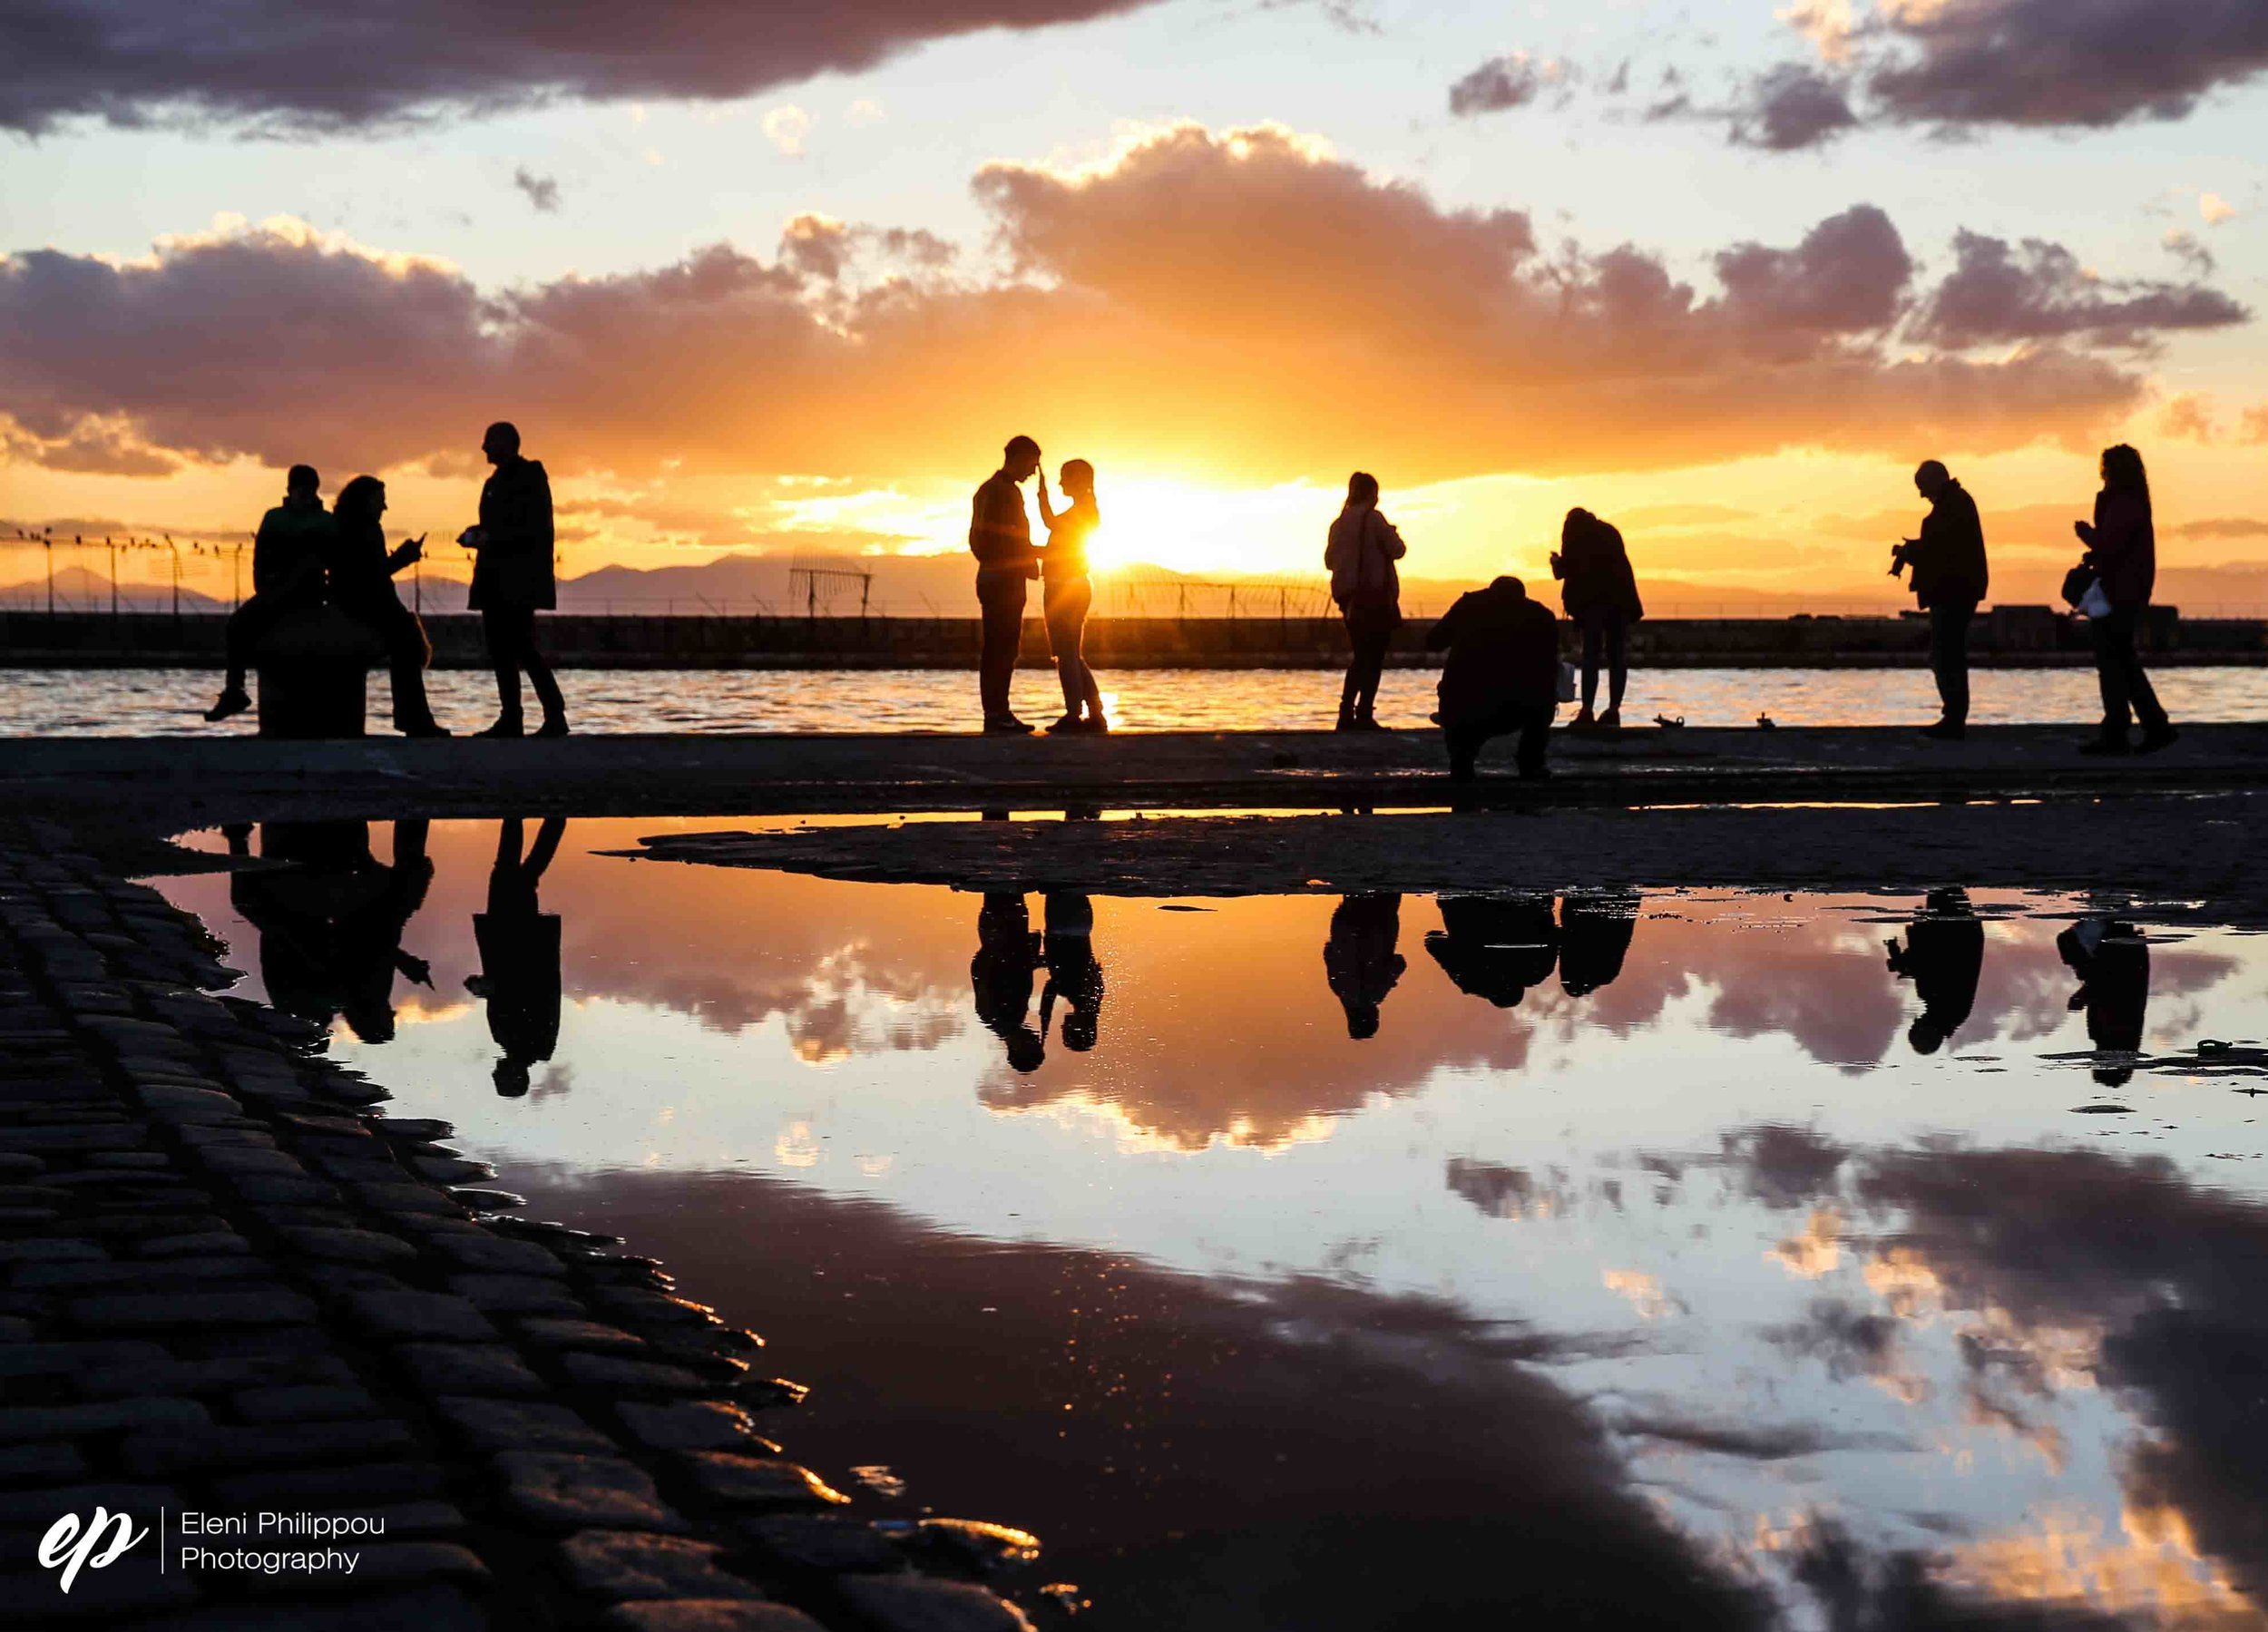 sunset reflections in Thessaloniki, Greece